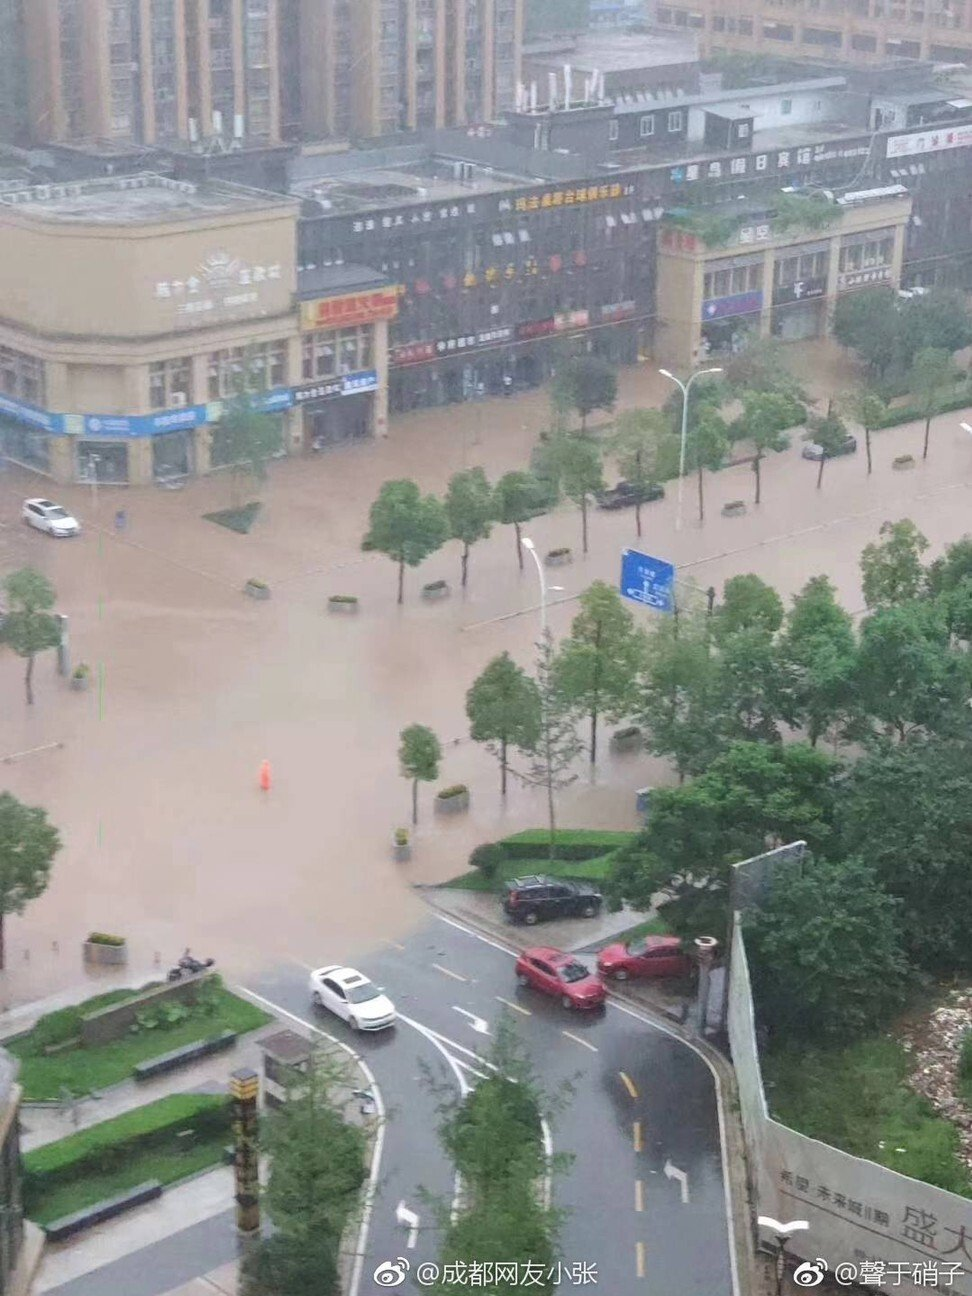 The floods have caused road closures and extensive damage to homes and property. Photo: Weibo